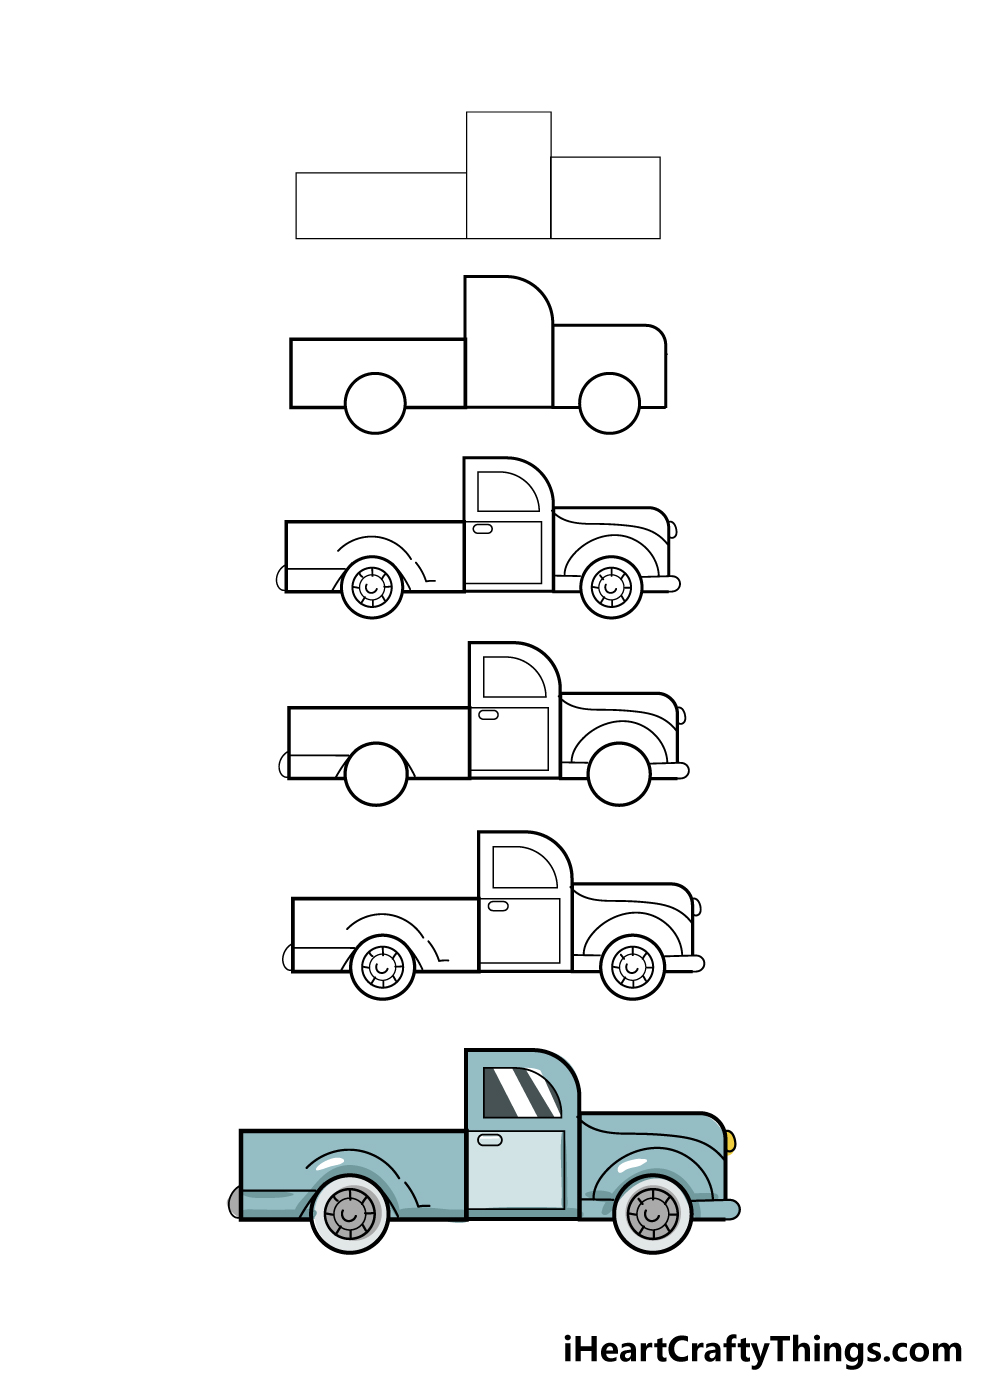 how to draw truck in 6 steps